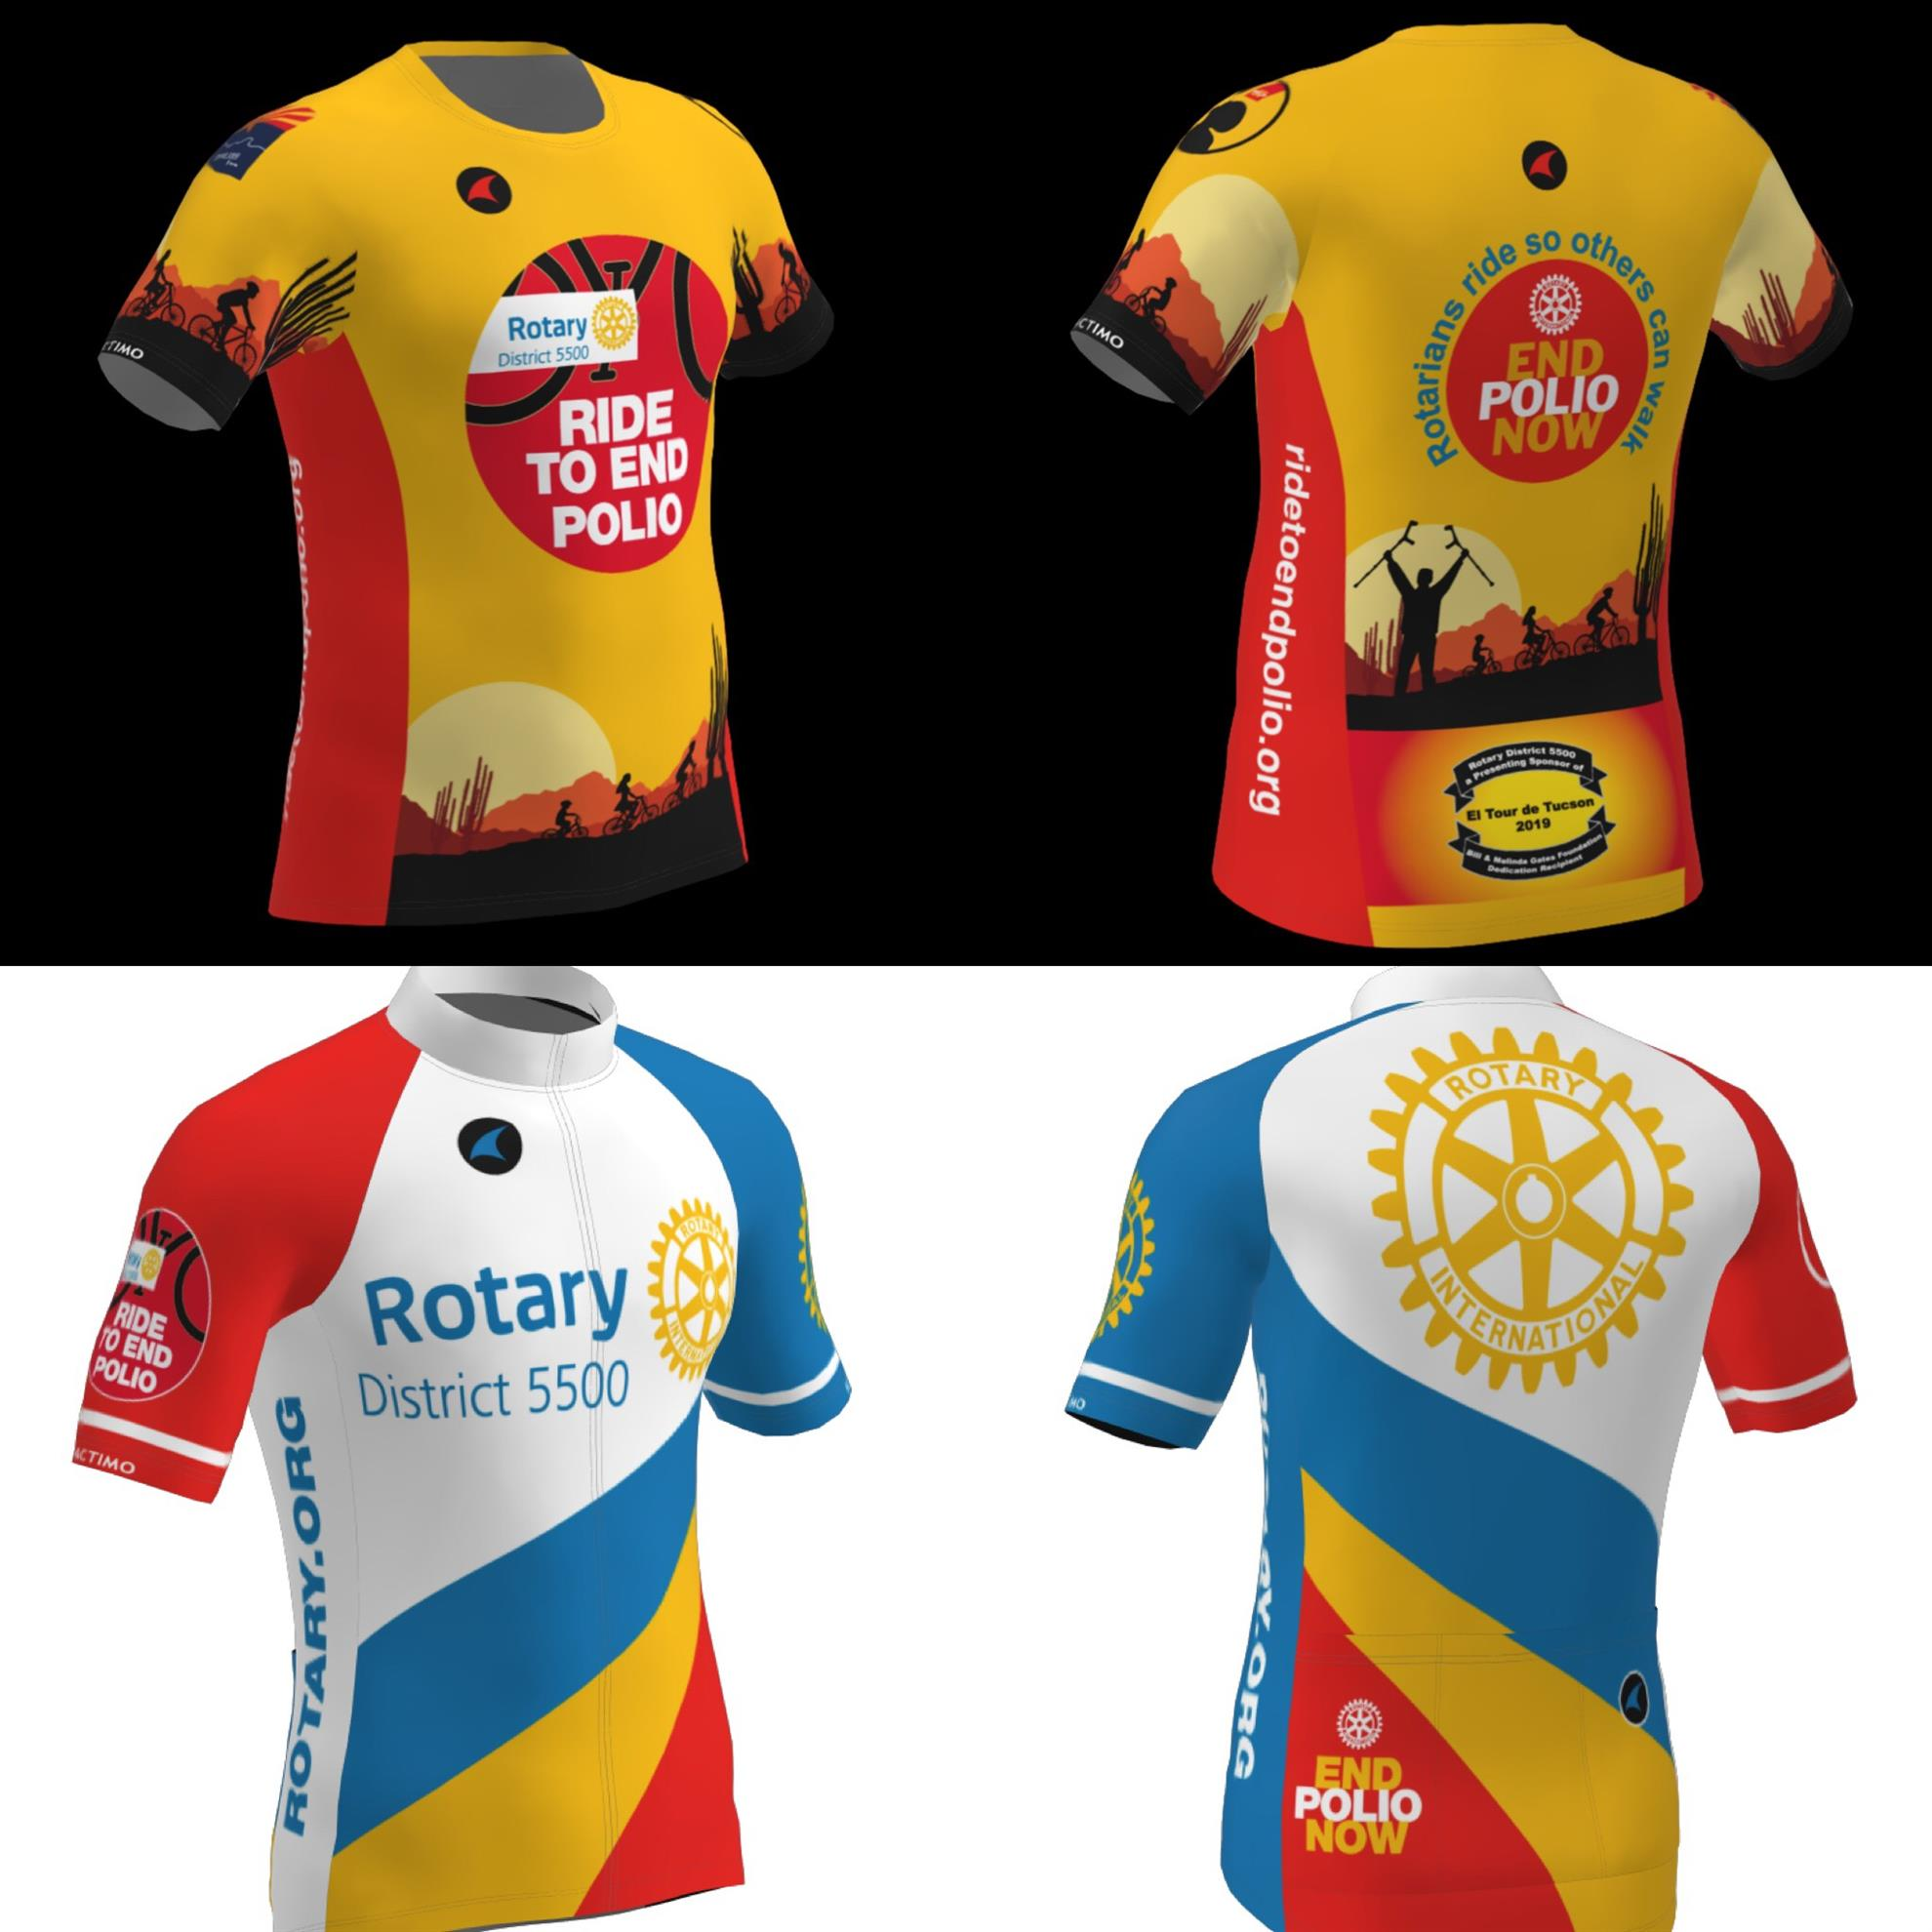 El Tour de Tucson - Ride to End Polio